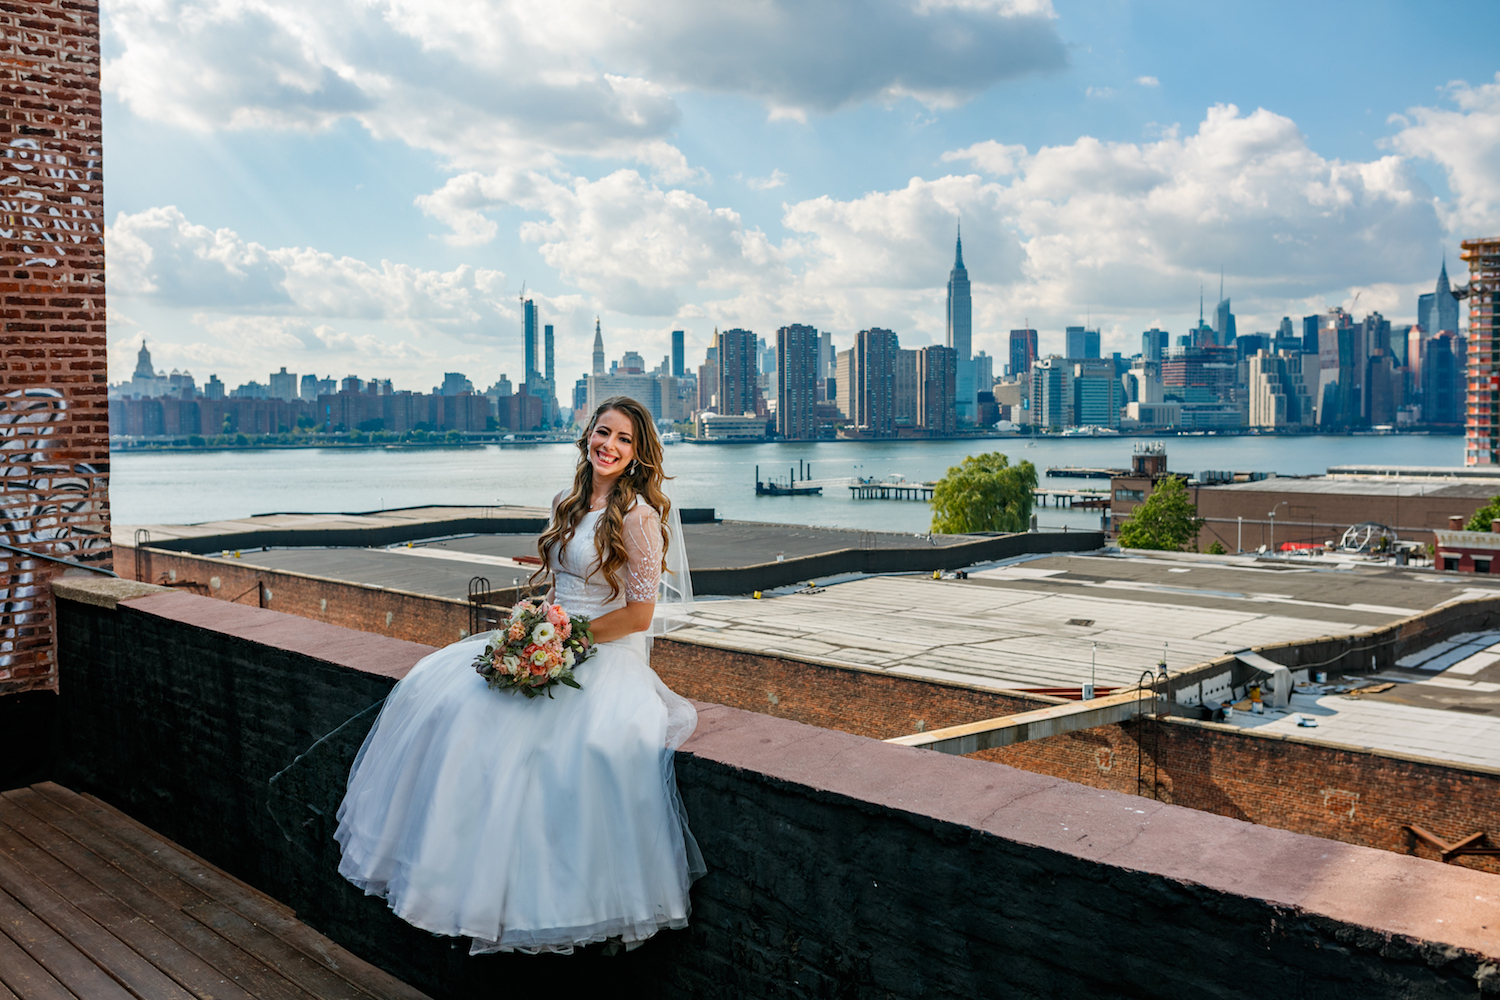 industrial-brooklyn-jewish-wedding-yonatanhalperin-photography-09